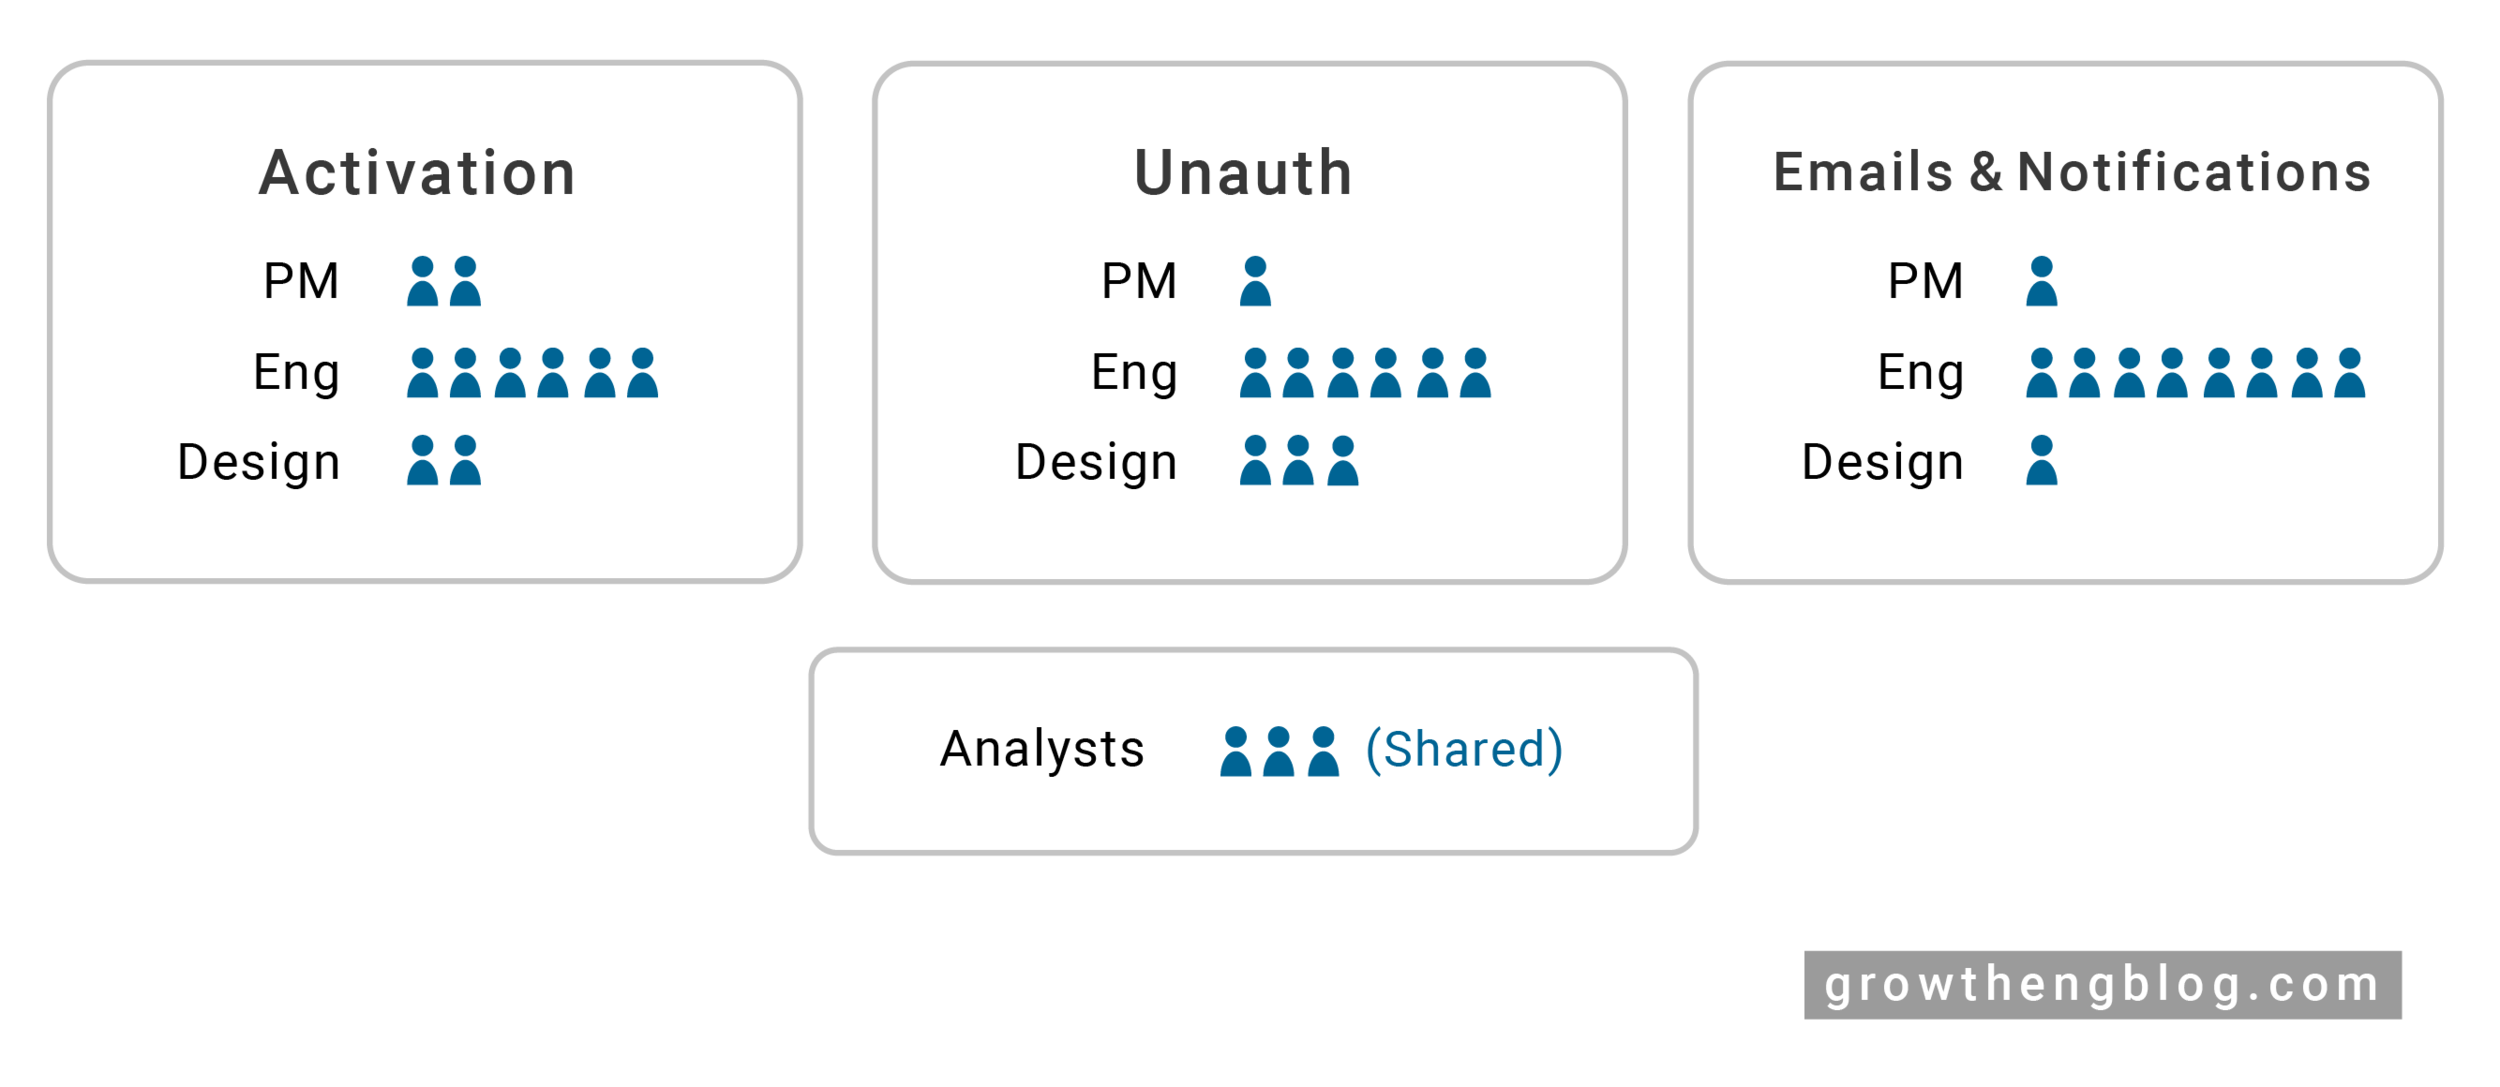 In the beginning, you'll probably start with one atomic growth team. As your team grows, you will naturally split into multiple atomic growth teams owning different areas. As you can see, there is no perfect PM : Engineer : Design ratio, and the correct number of each to hire depends on team needs.